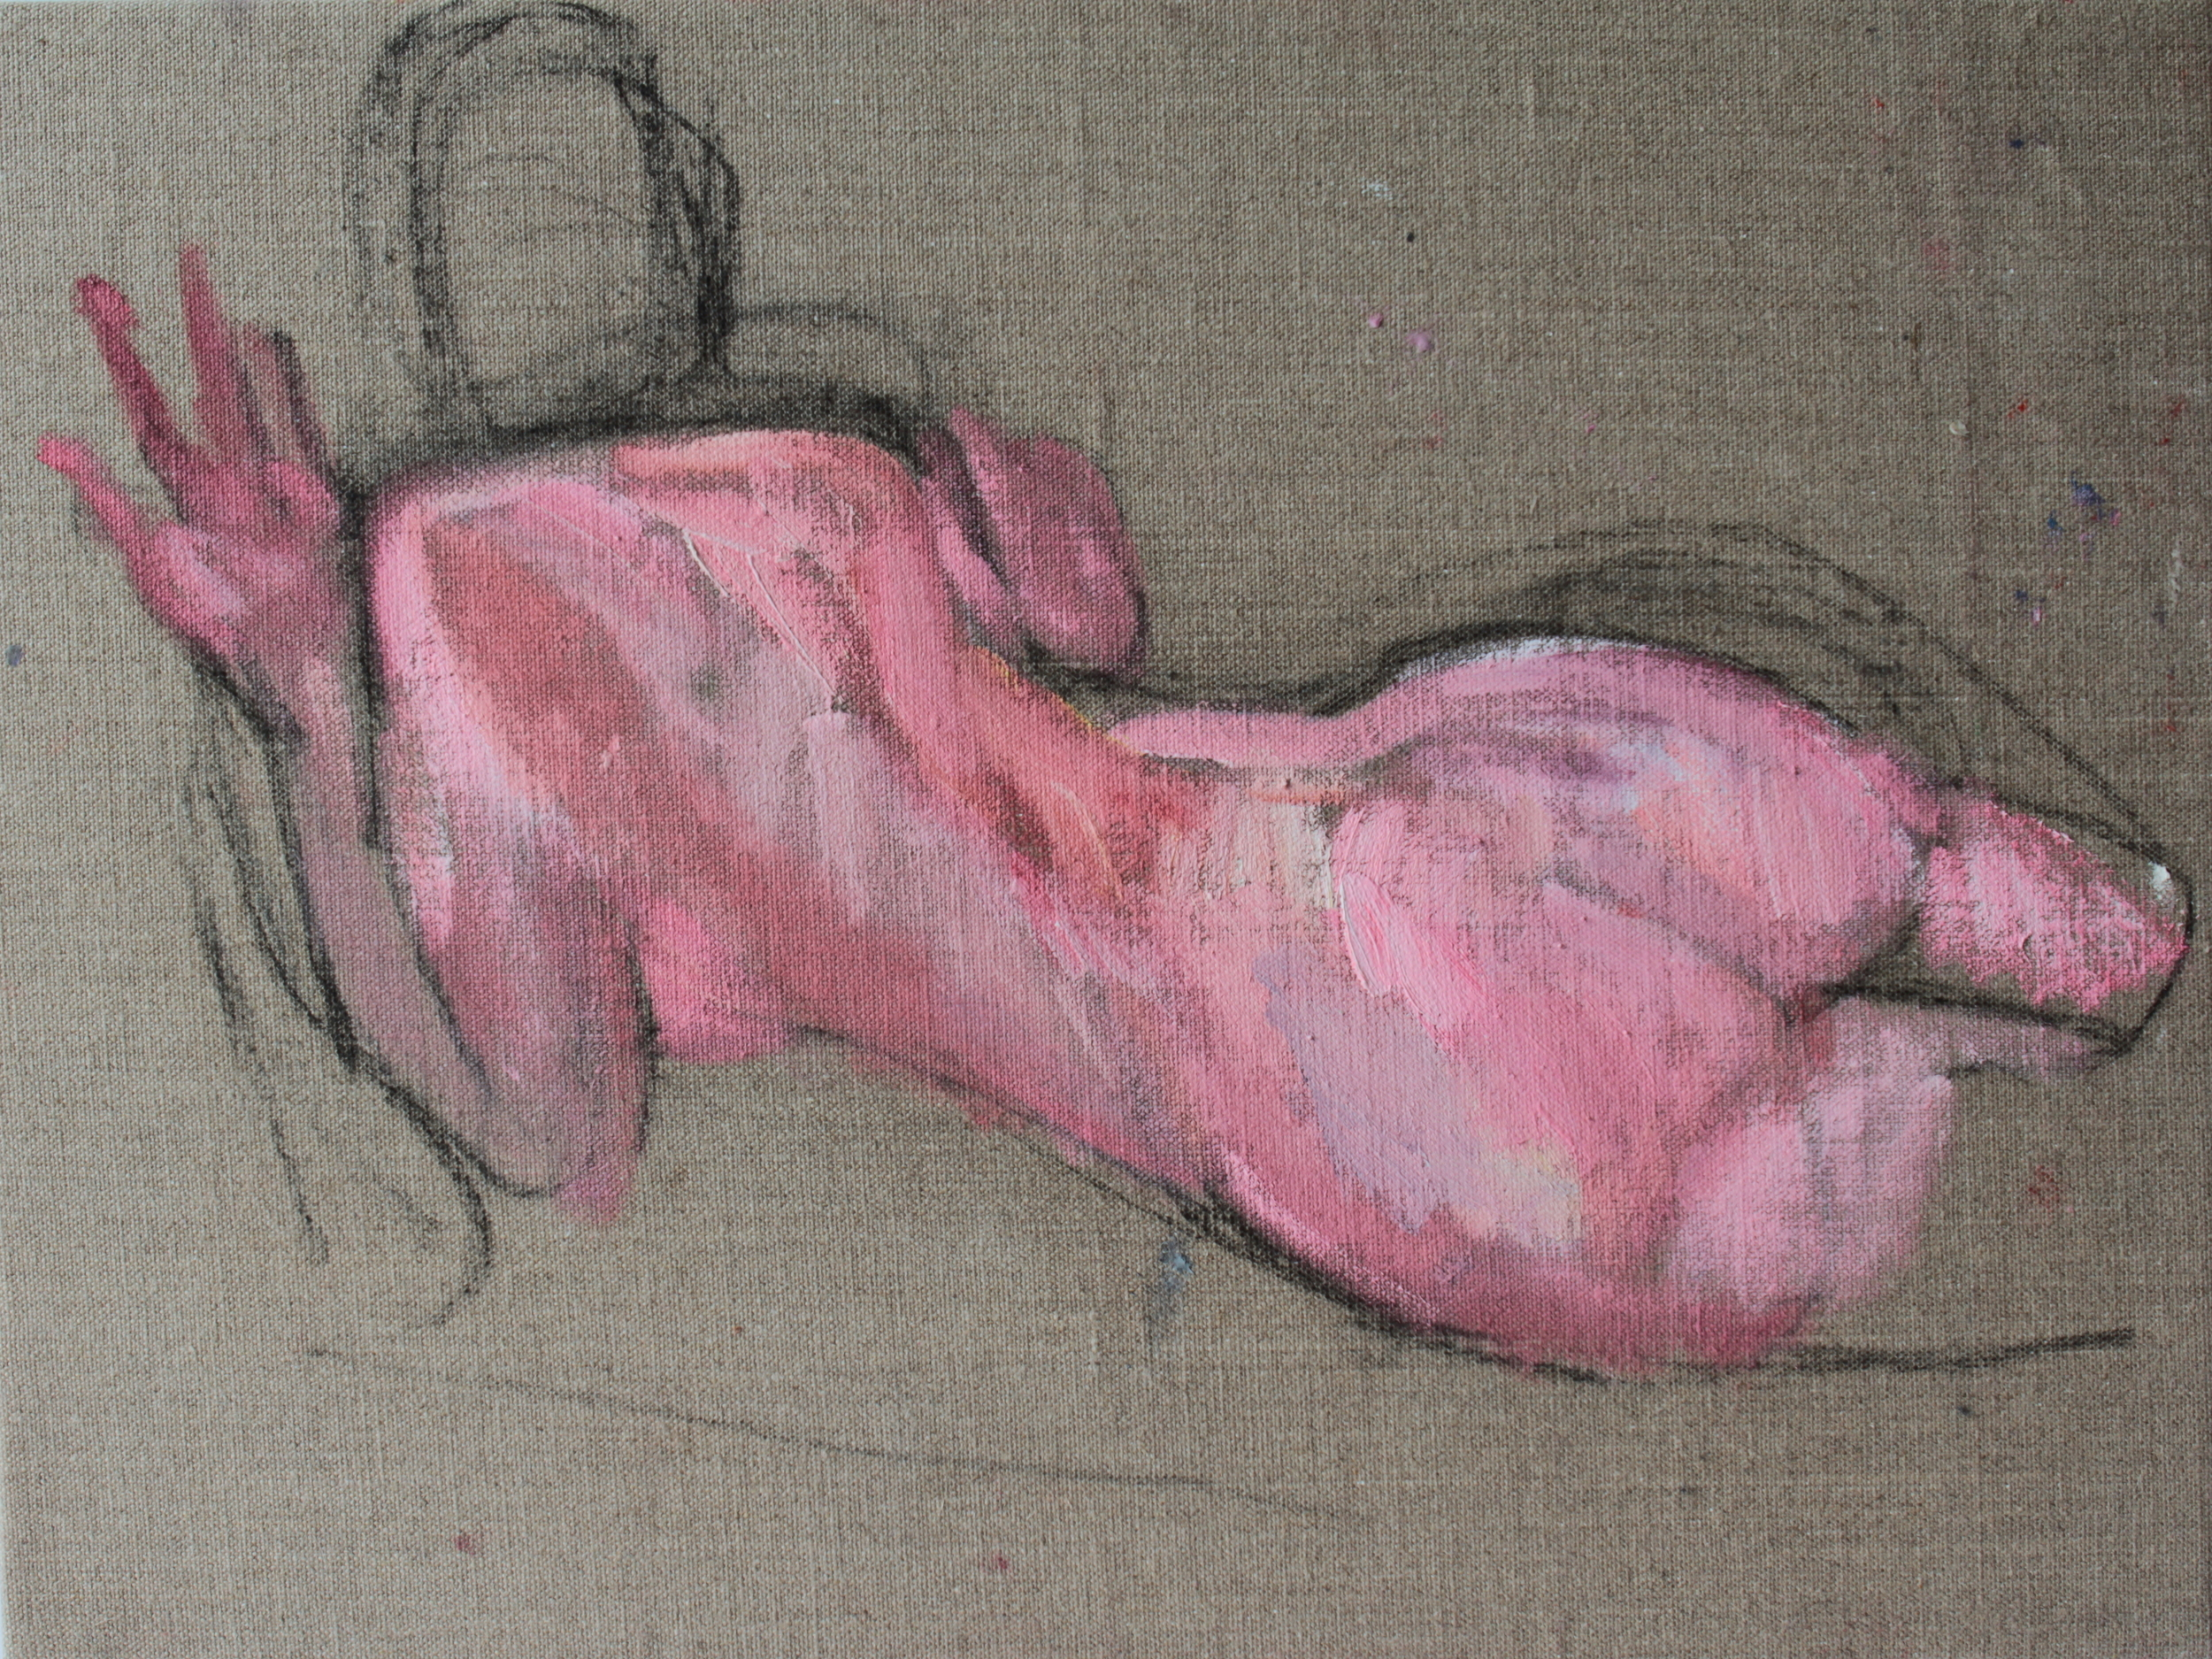 Rump, Oil and charcoal on linen, 37.9 x 50.4 cm, 2015